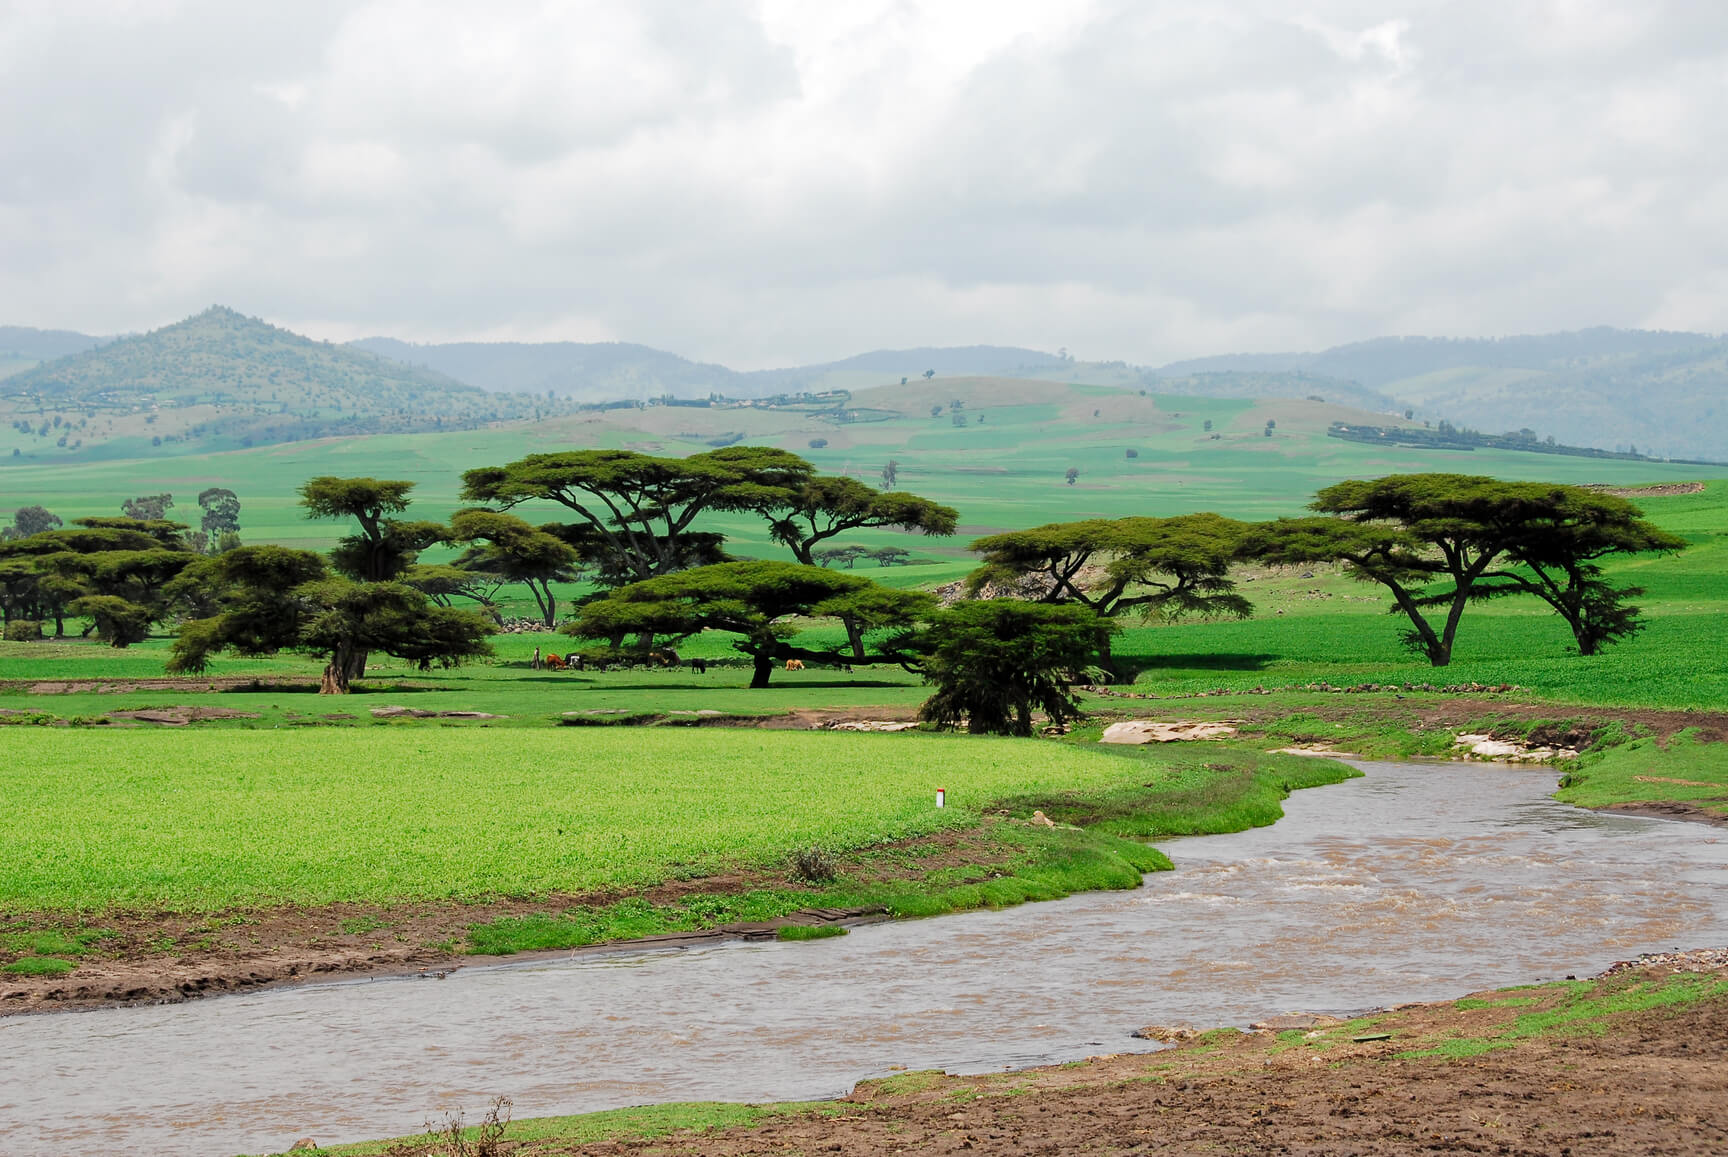 Non-stop from Jeddah, Saudi Arabia to Addis Ababa, Ethiopia for only $331 USD roundtrip